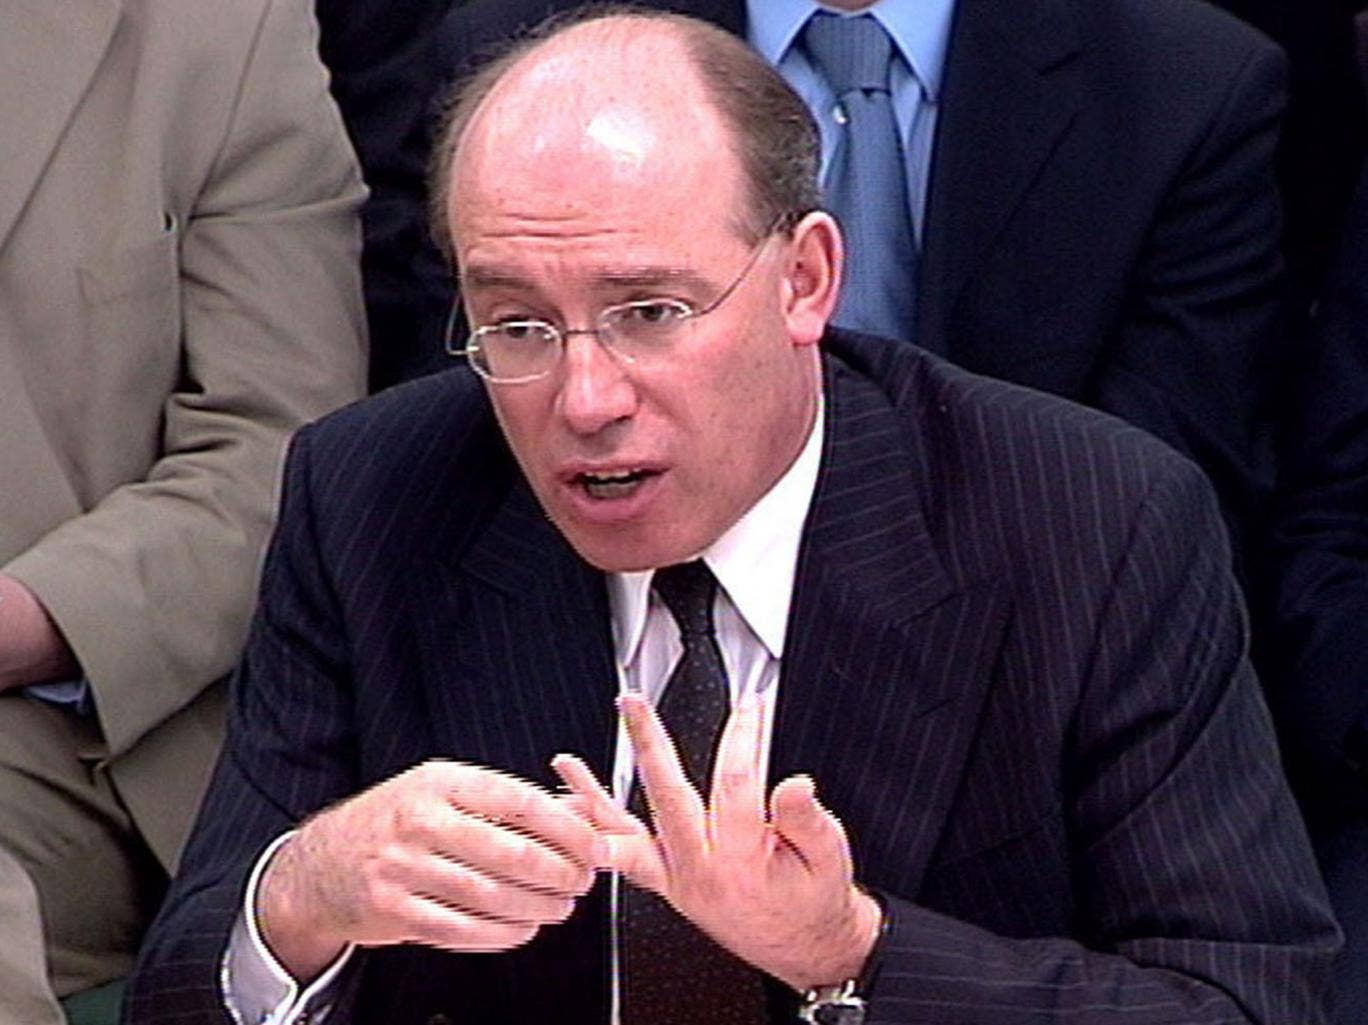 James Crosby during a Treasury Select Committee meeting